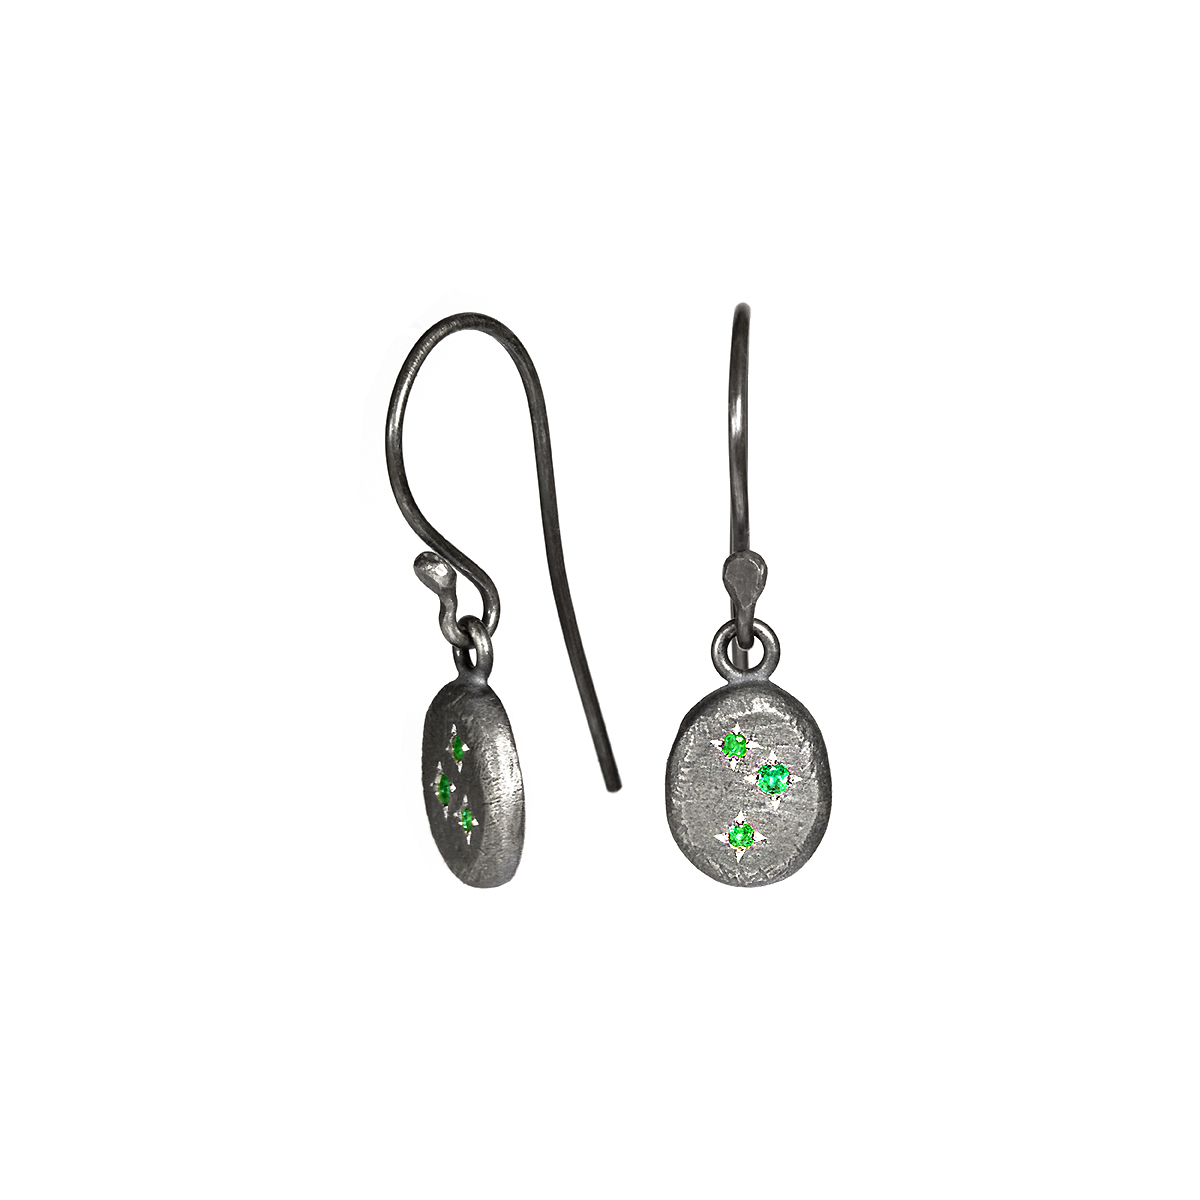 ENVY medium earrings